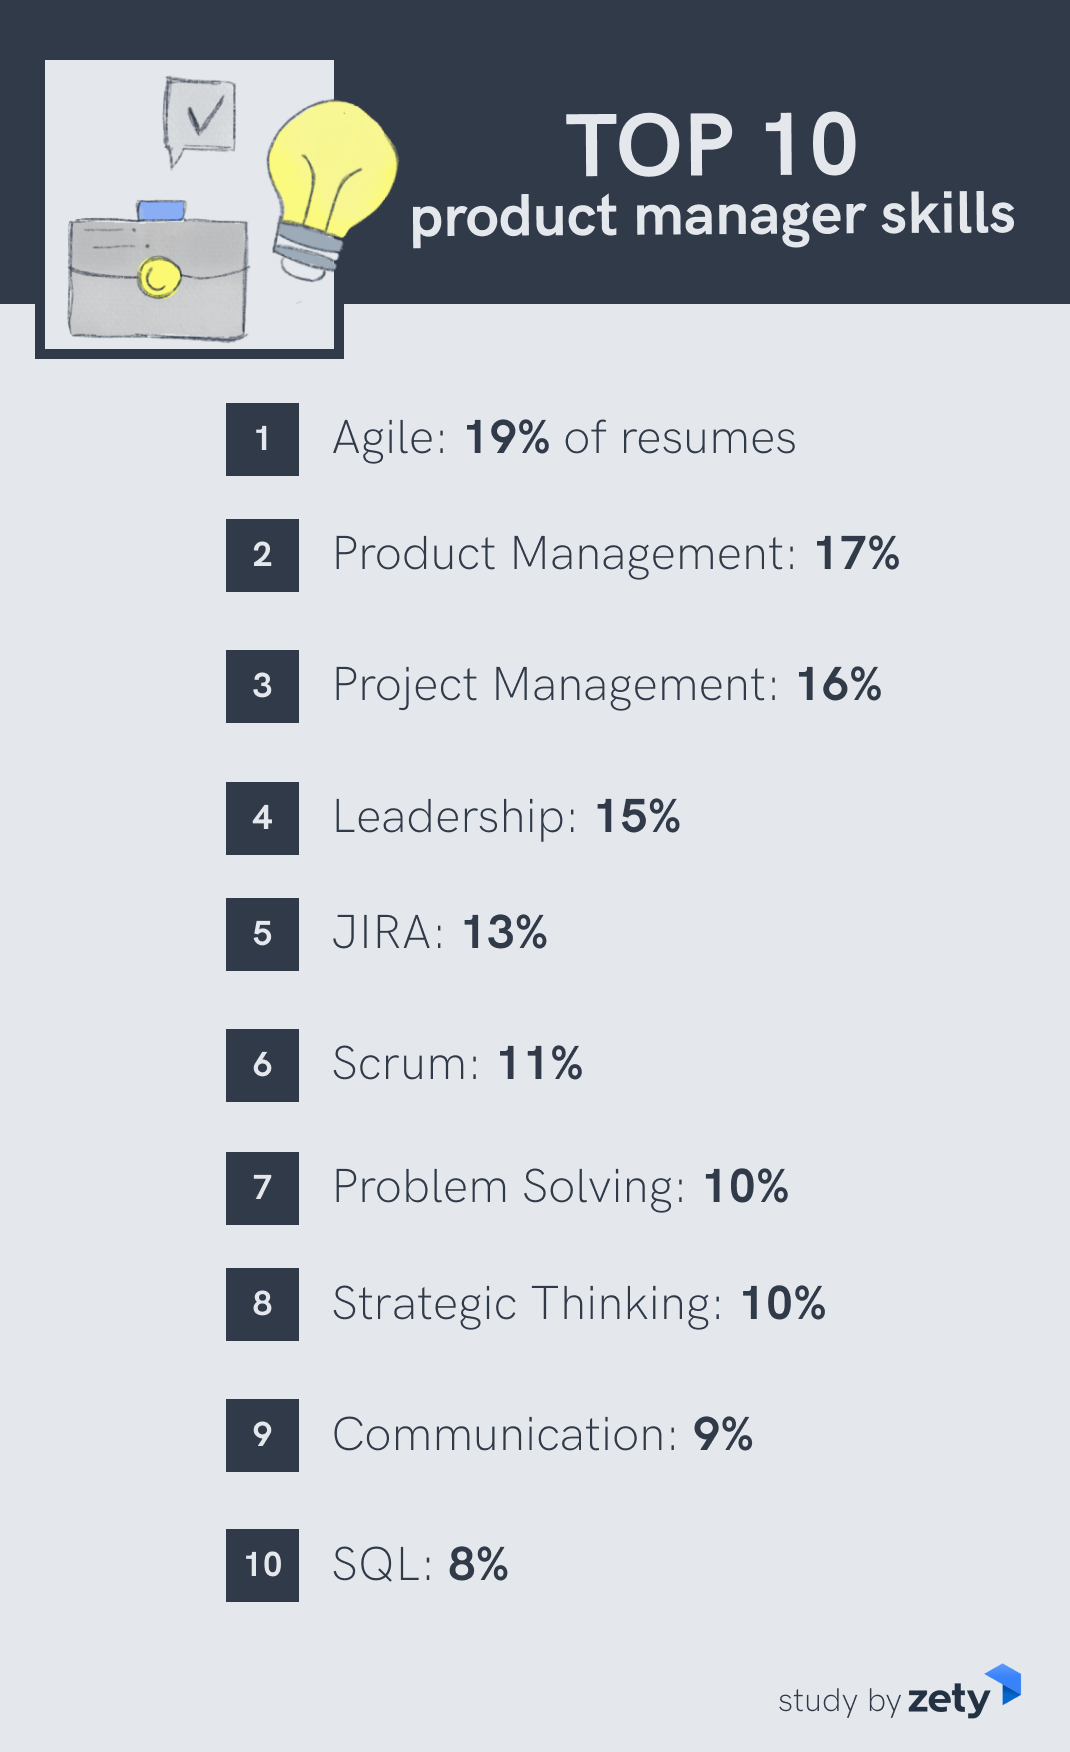 Top product manager skills